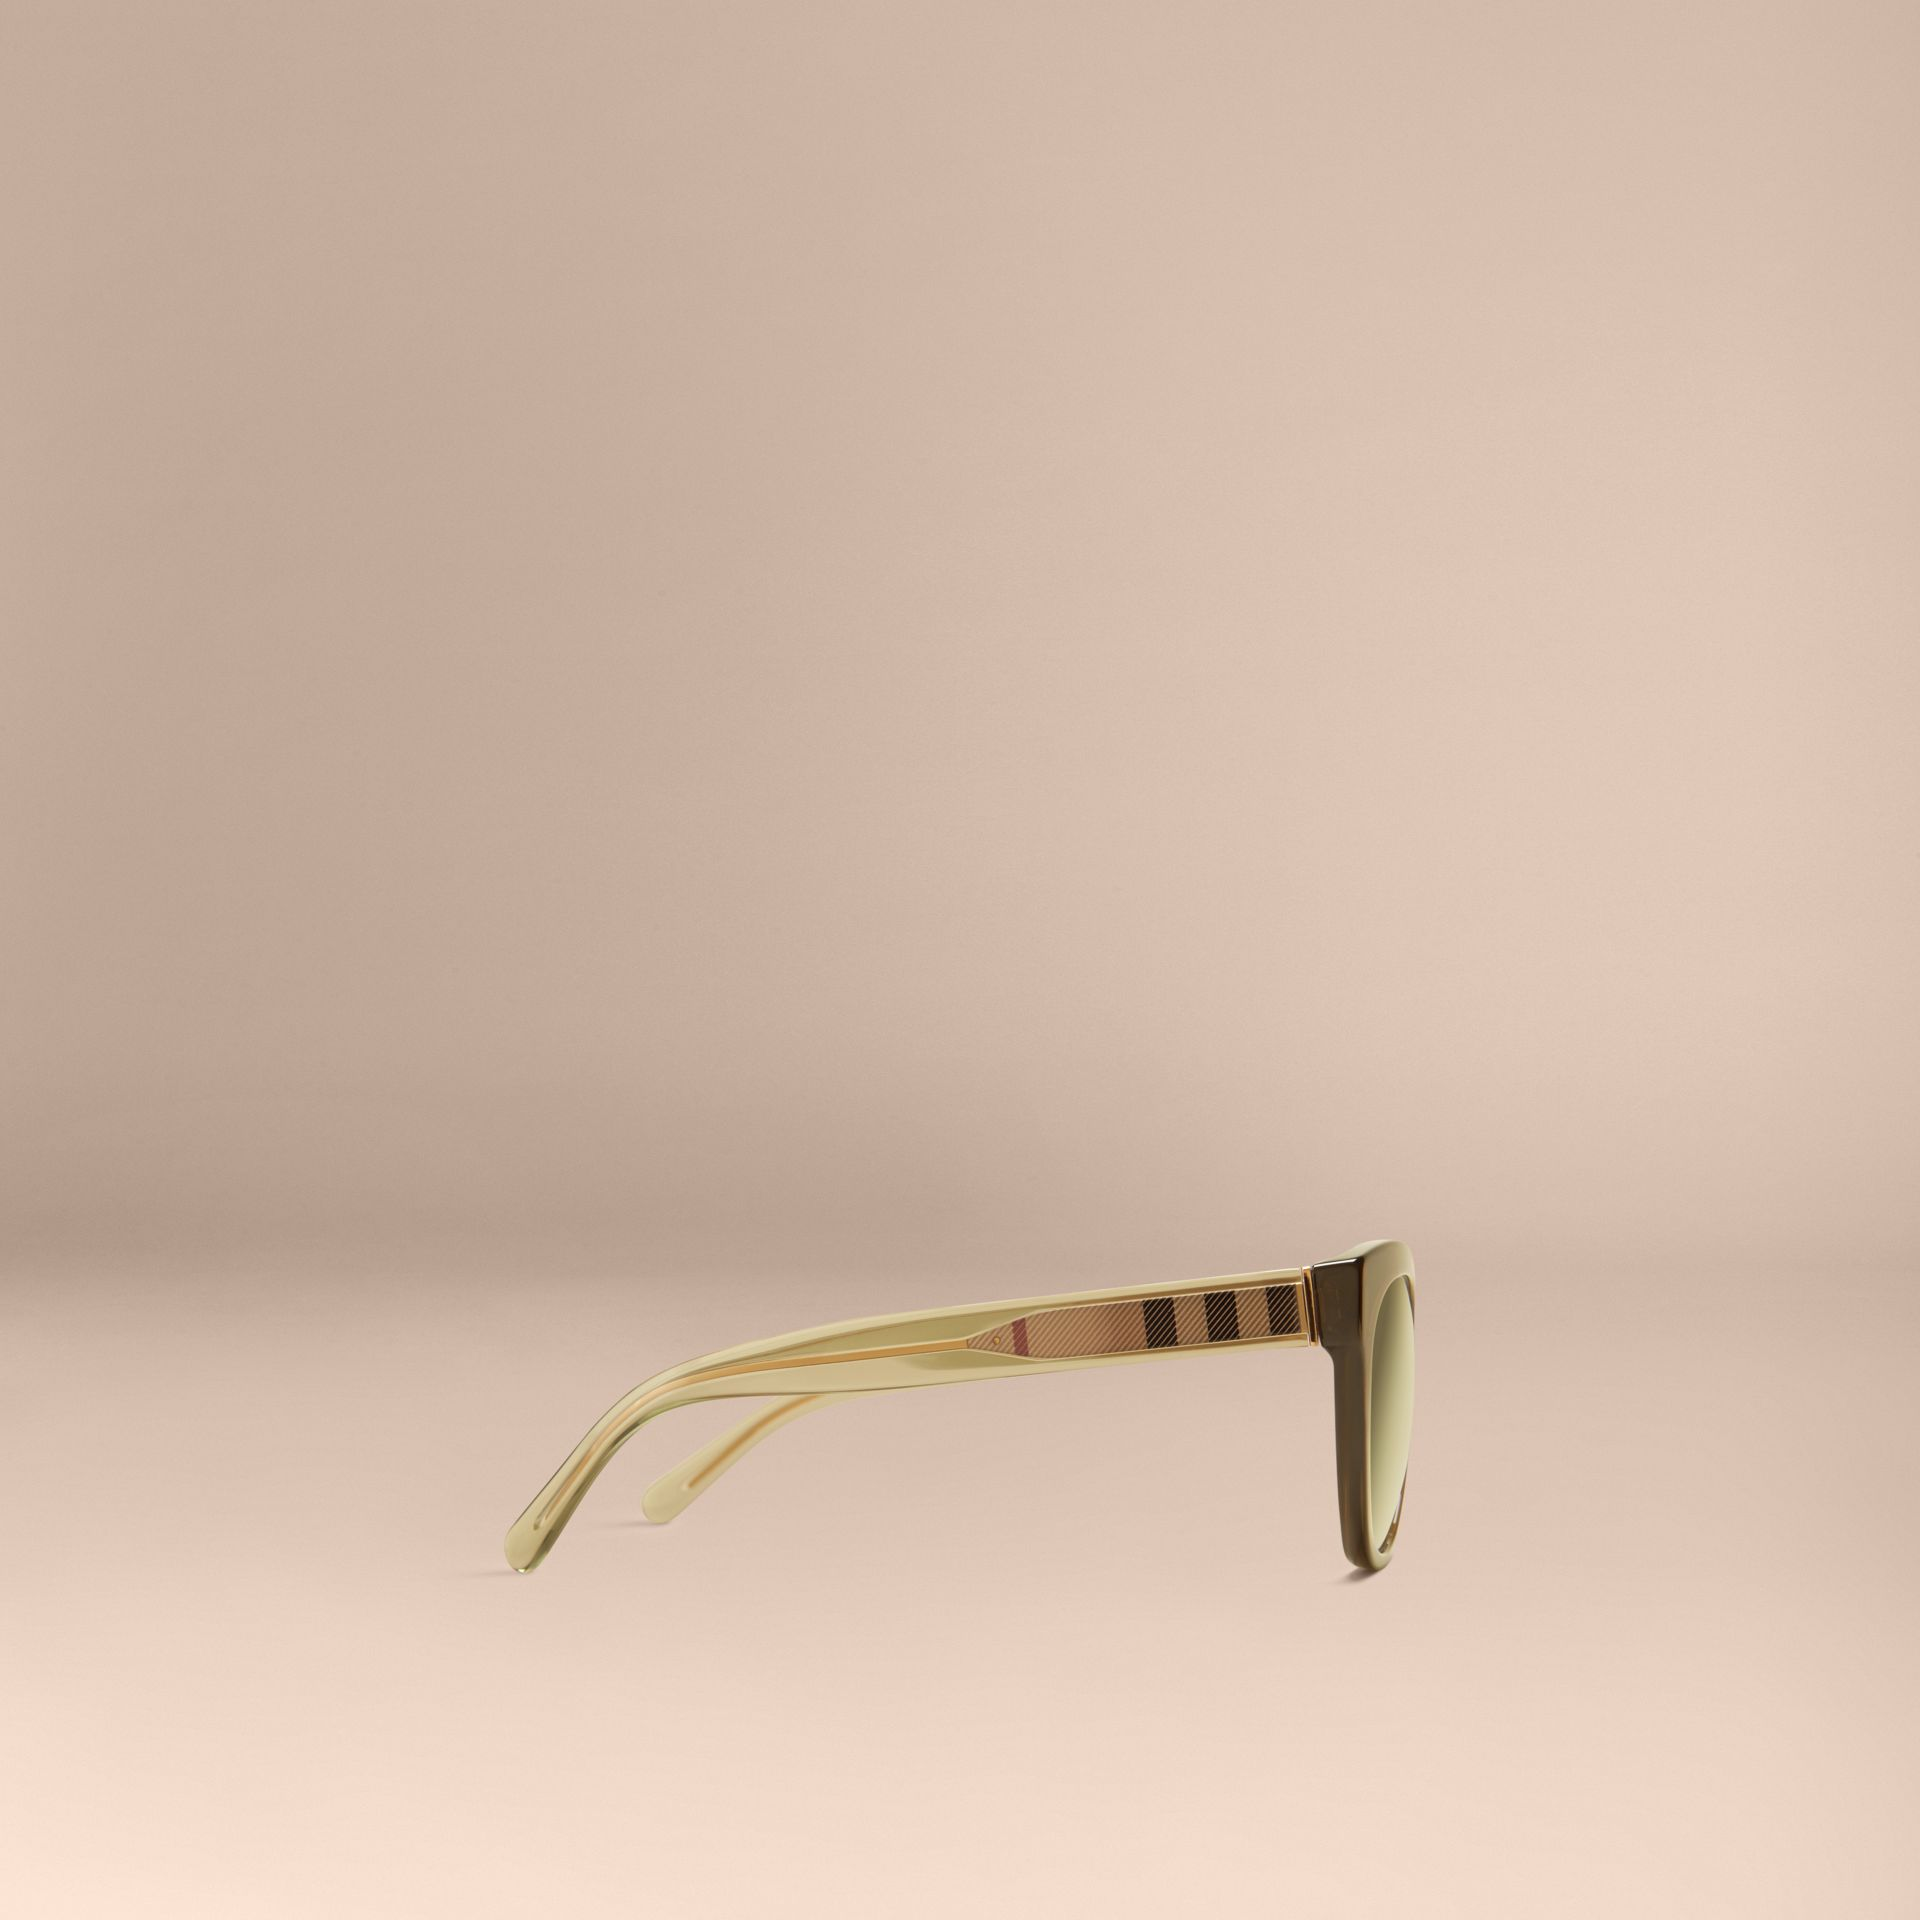 Olive Check Detail Oval Sunglasses Olive - gallery image 5